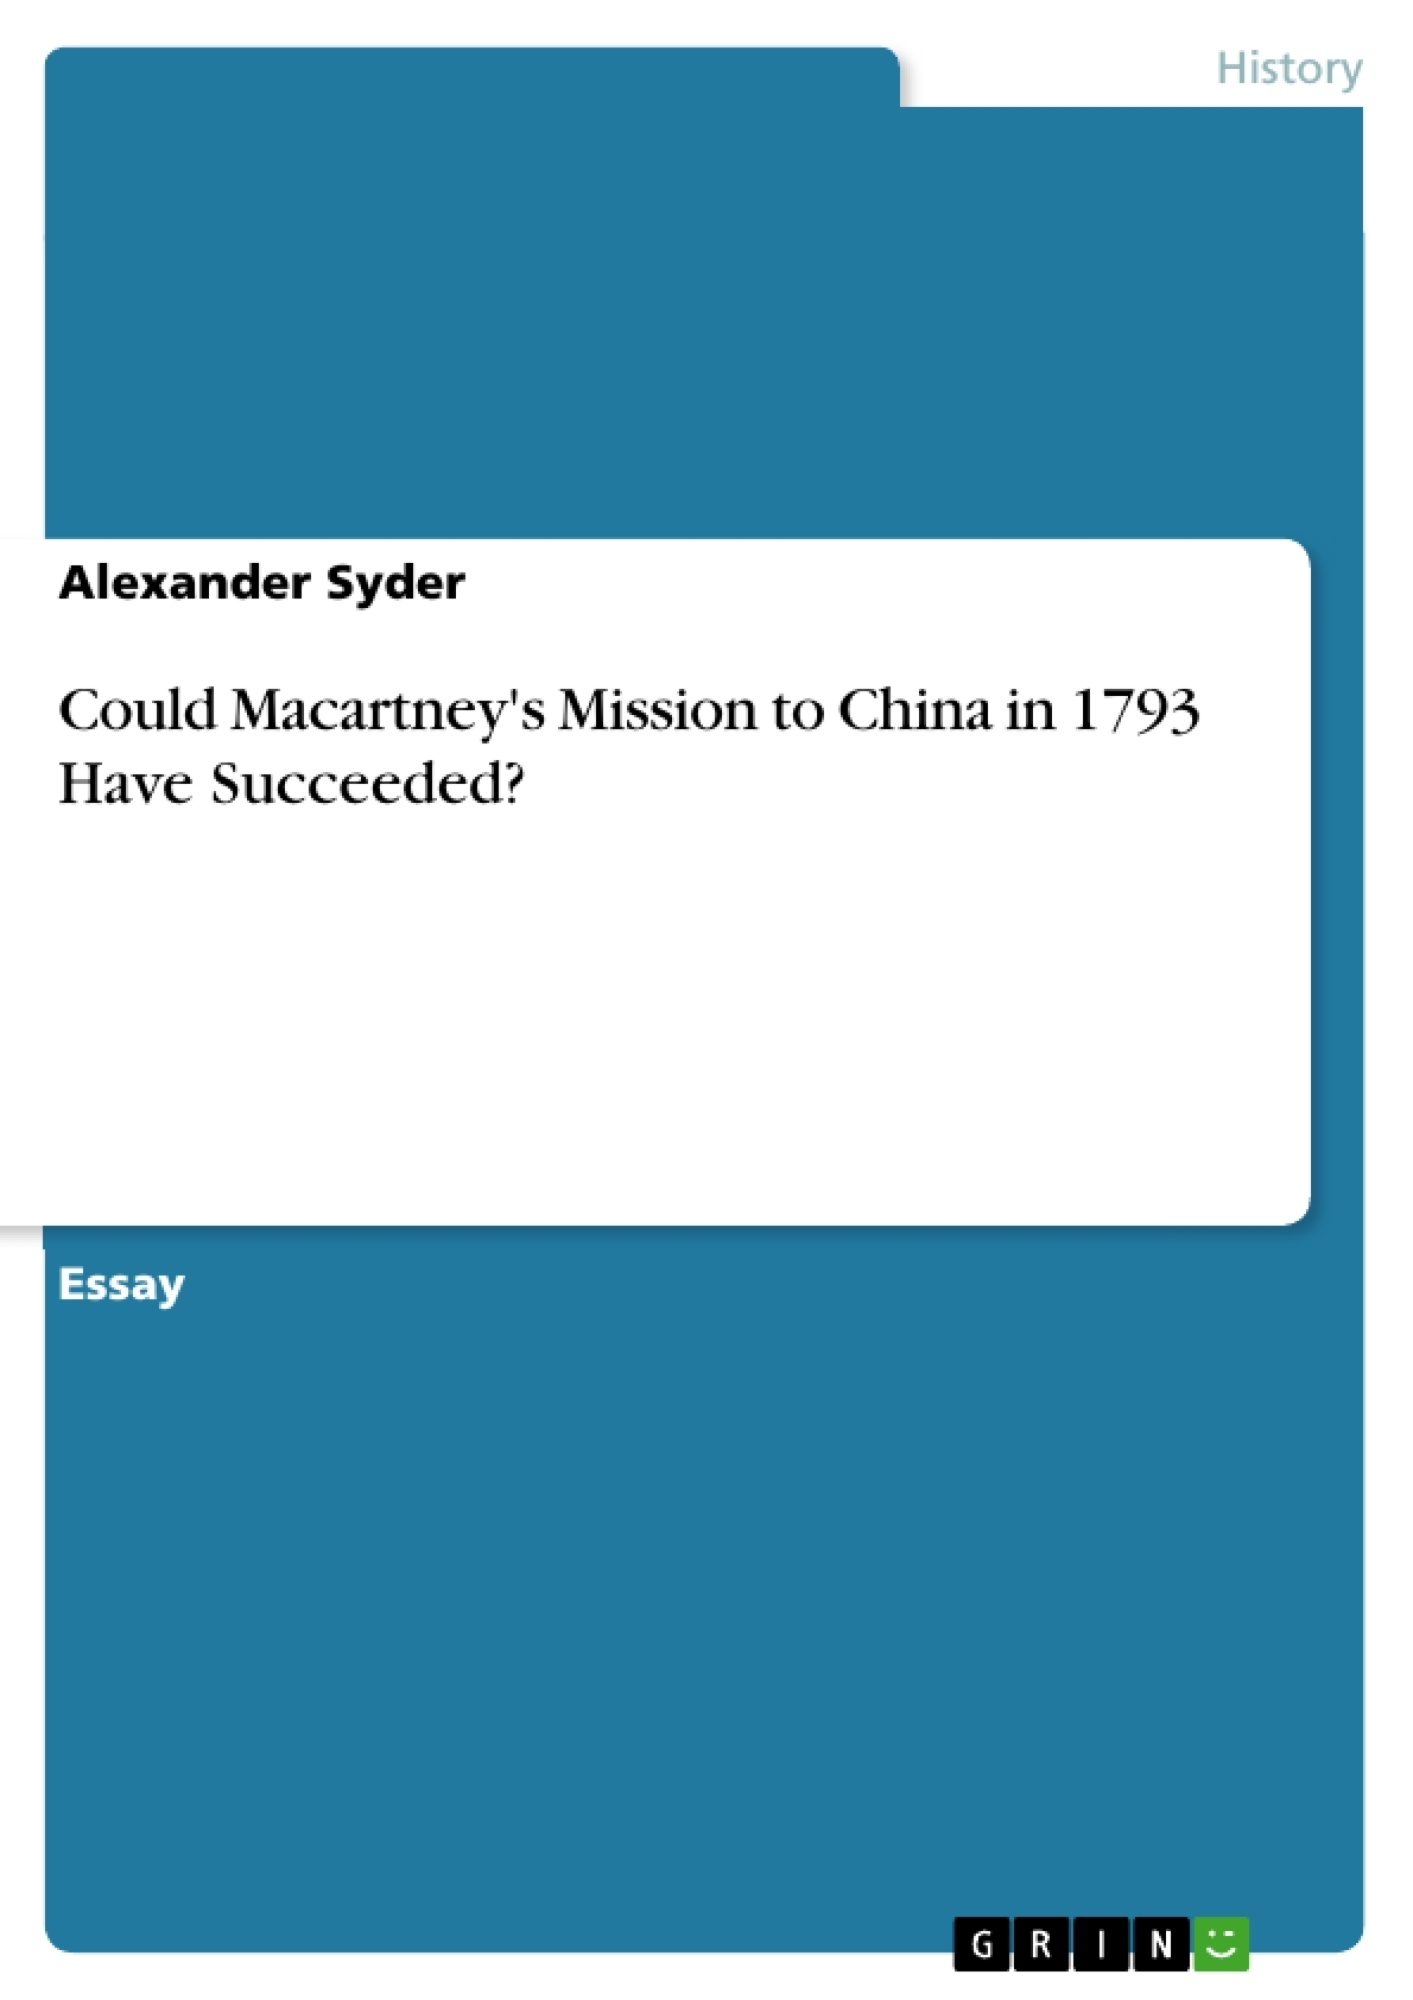 Title: Could Macartney's Mission to China in 1793 Have Succeeded?